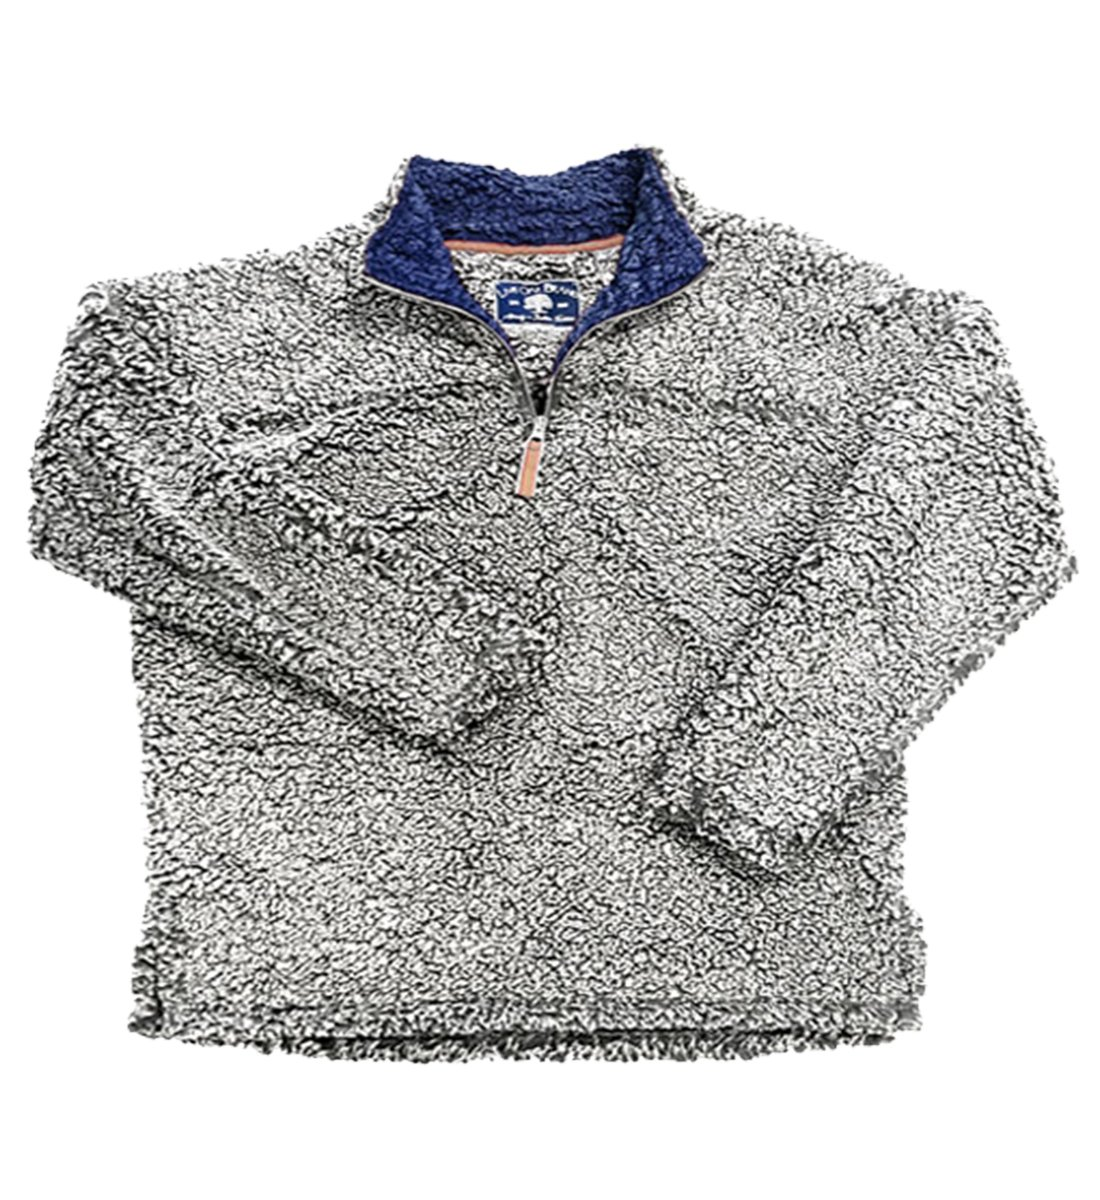 Live Oak Quarter Zip Pullover Fleece-Grey/Navy-xsmall by Live Oak